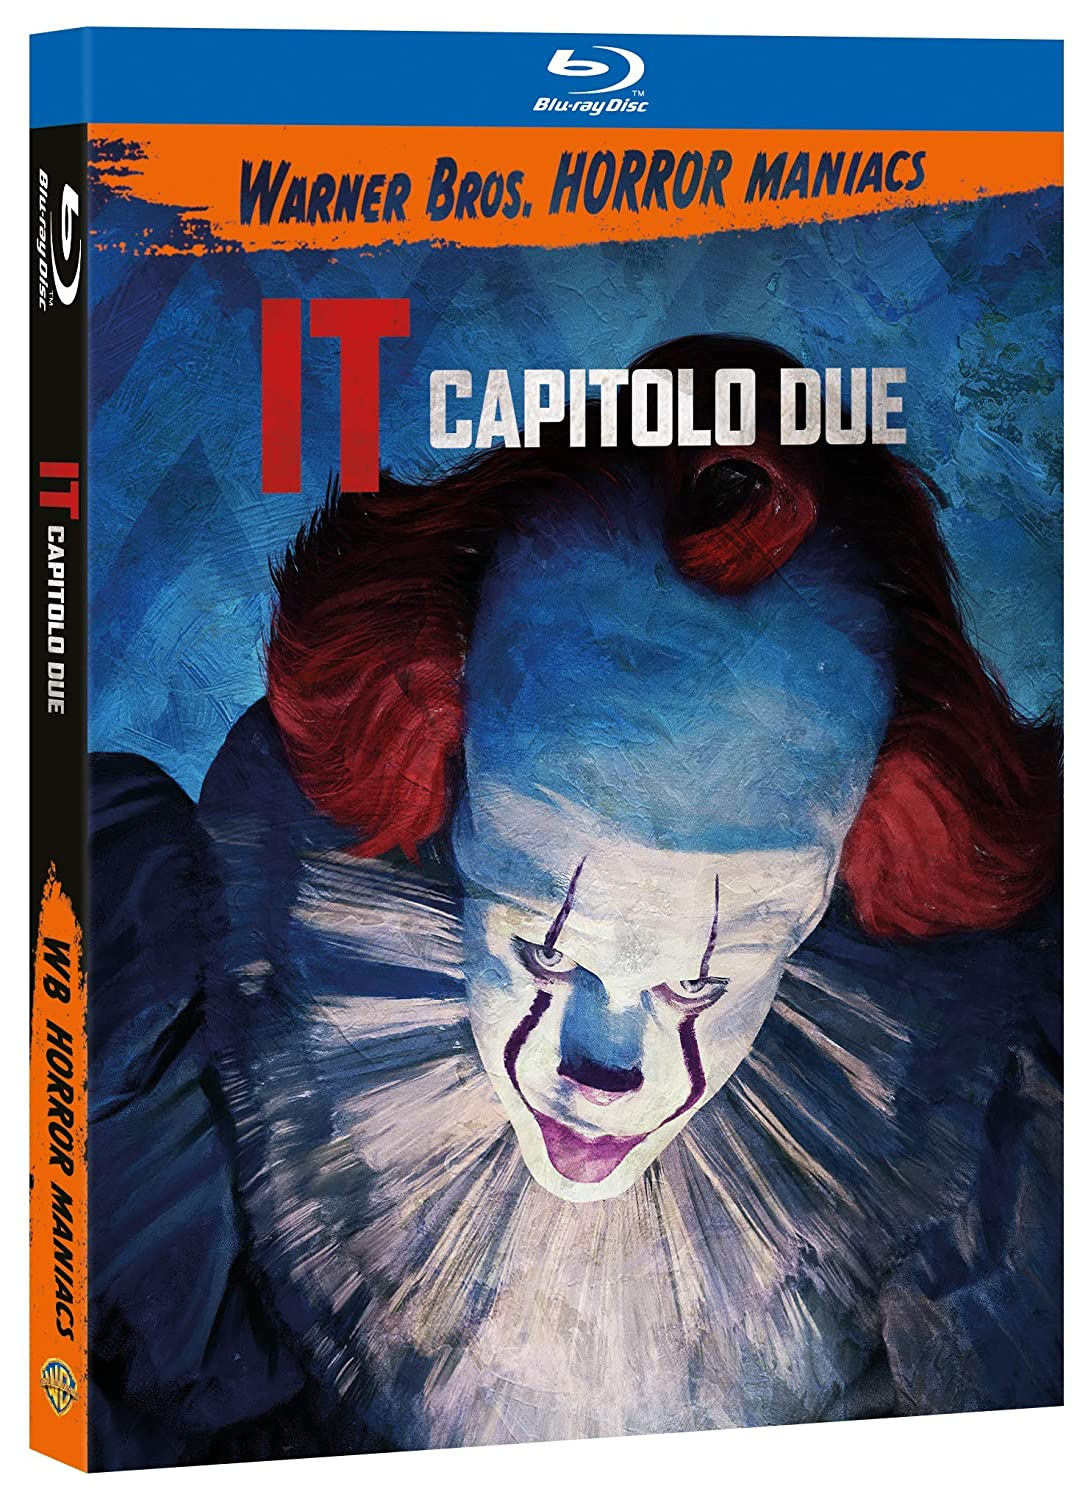 IT CAPITOLO DUE (HORROR MANIACS COLLECTION) - BLU RAY